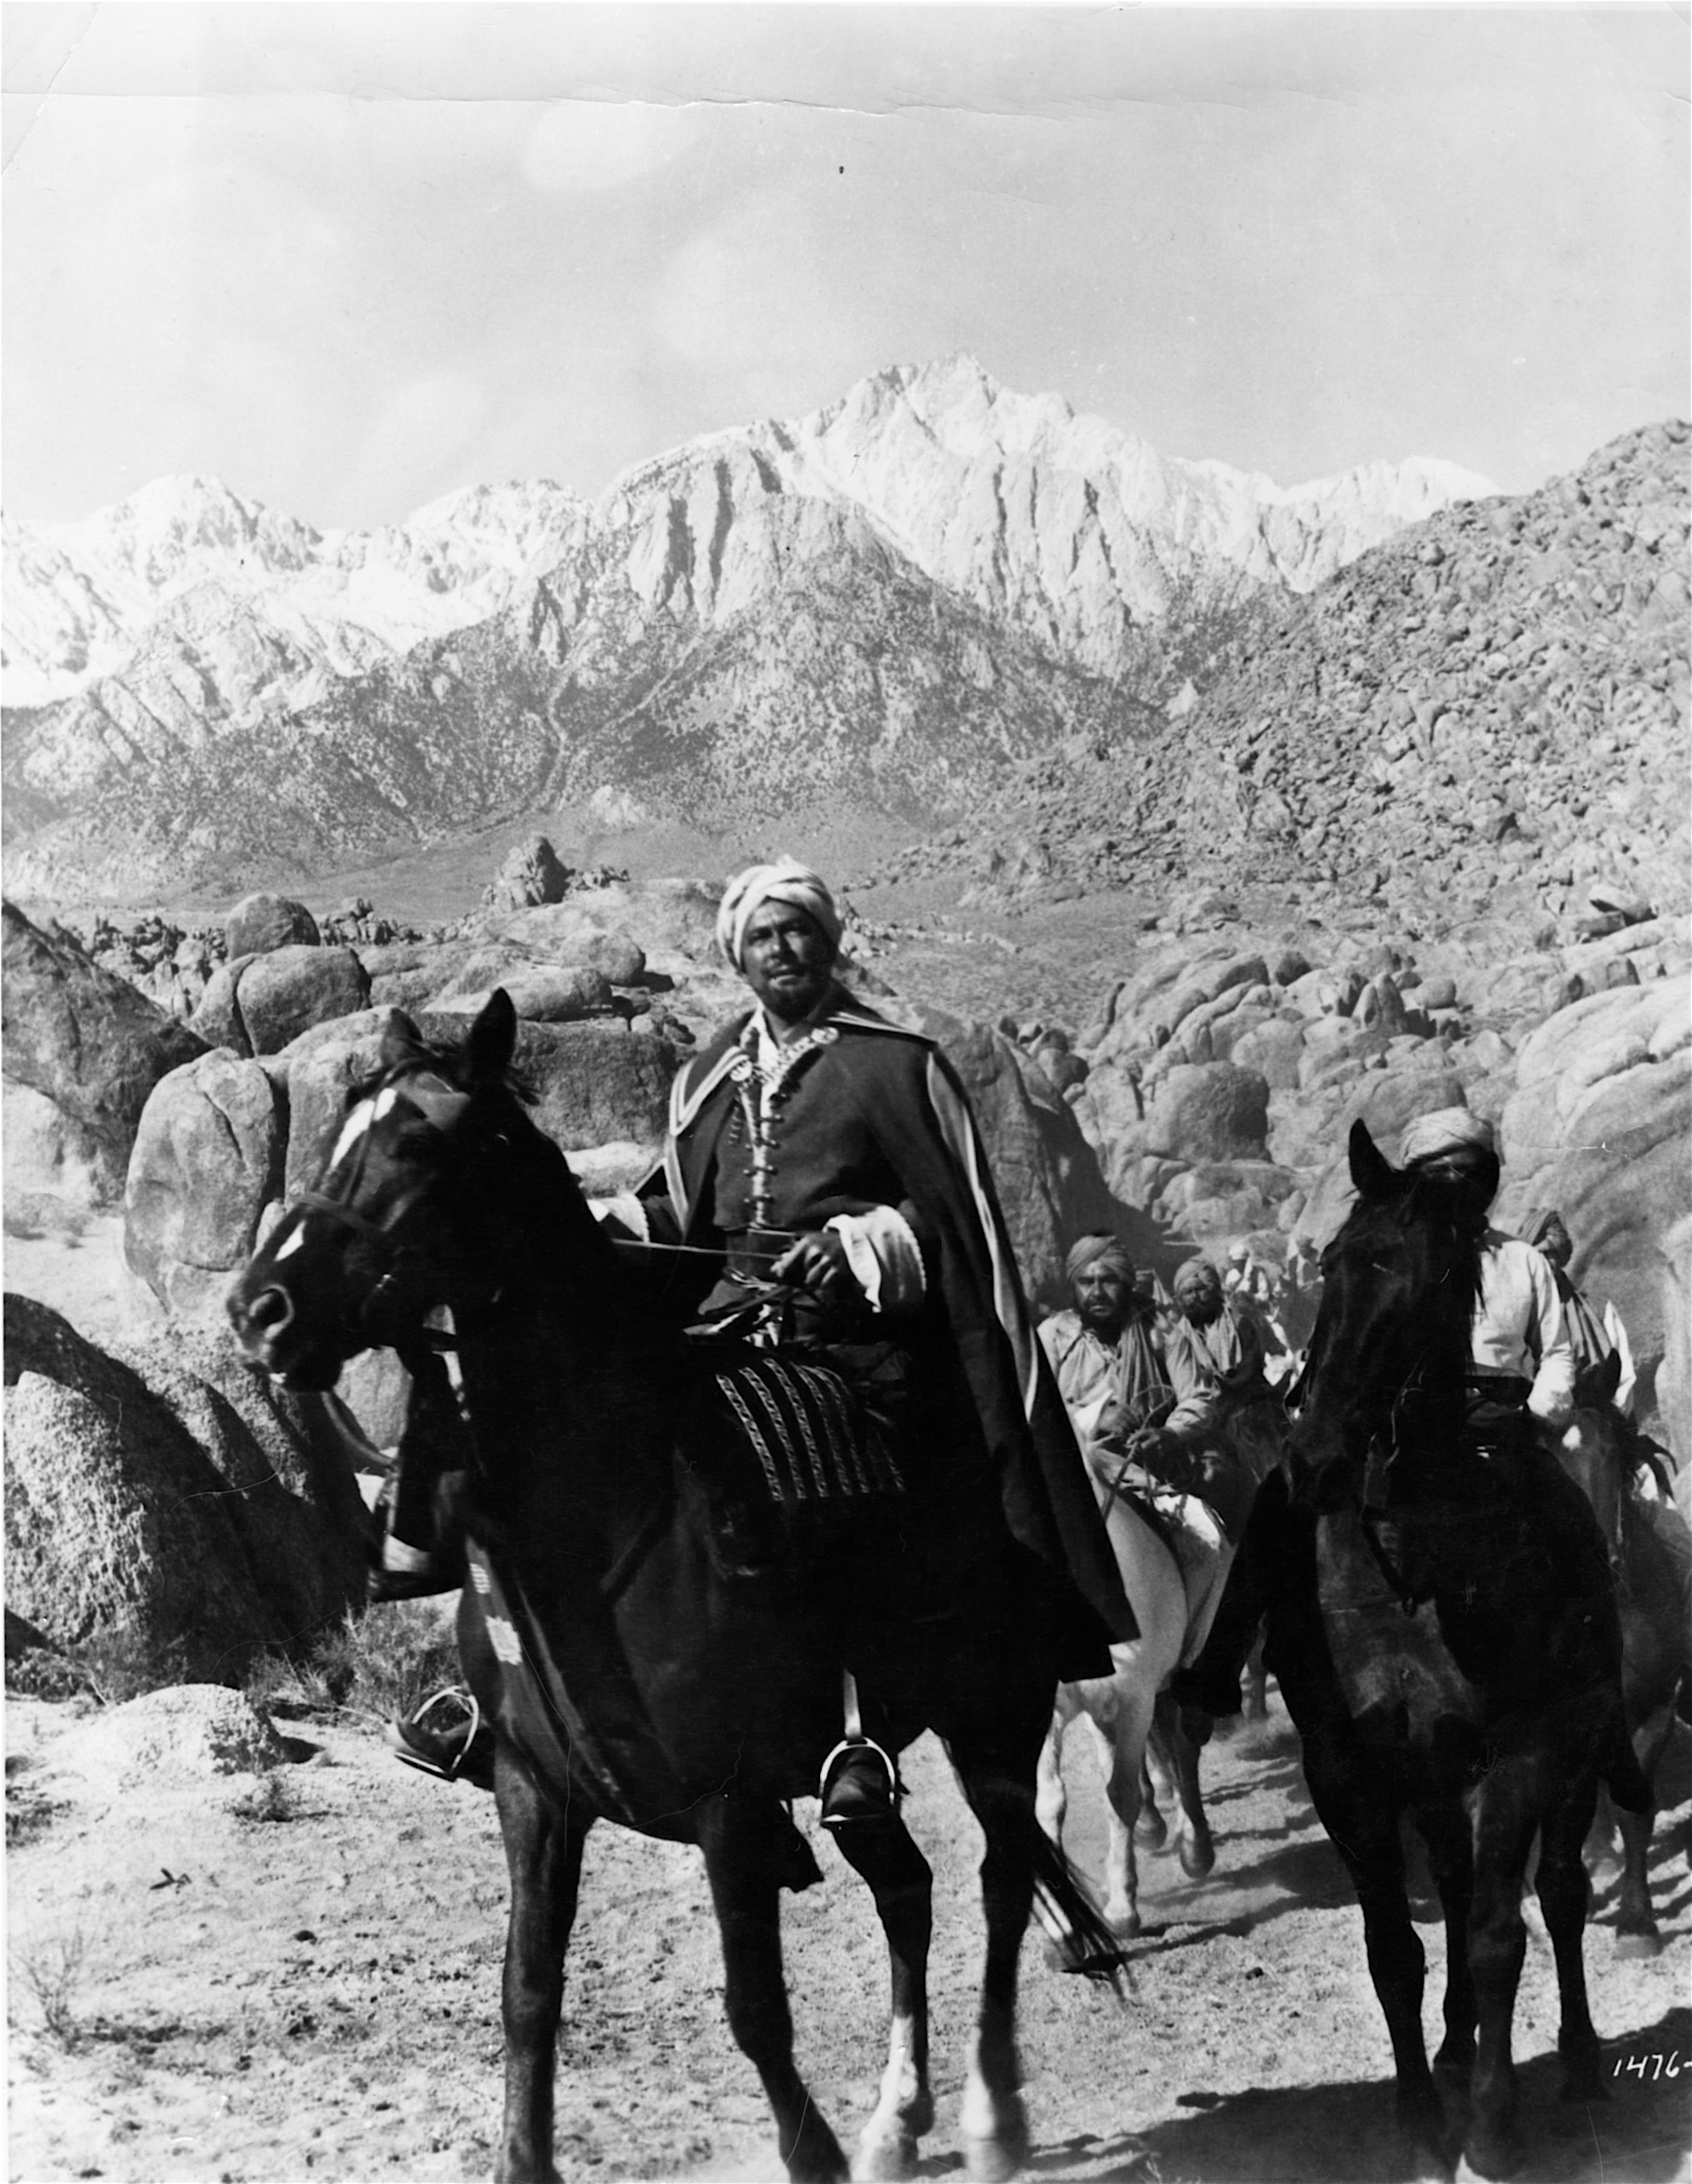 Errol Flynn rides through the Alabama Hills with Lone Pine Peak in the background.